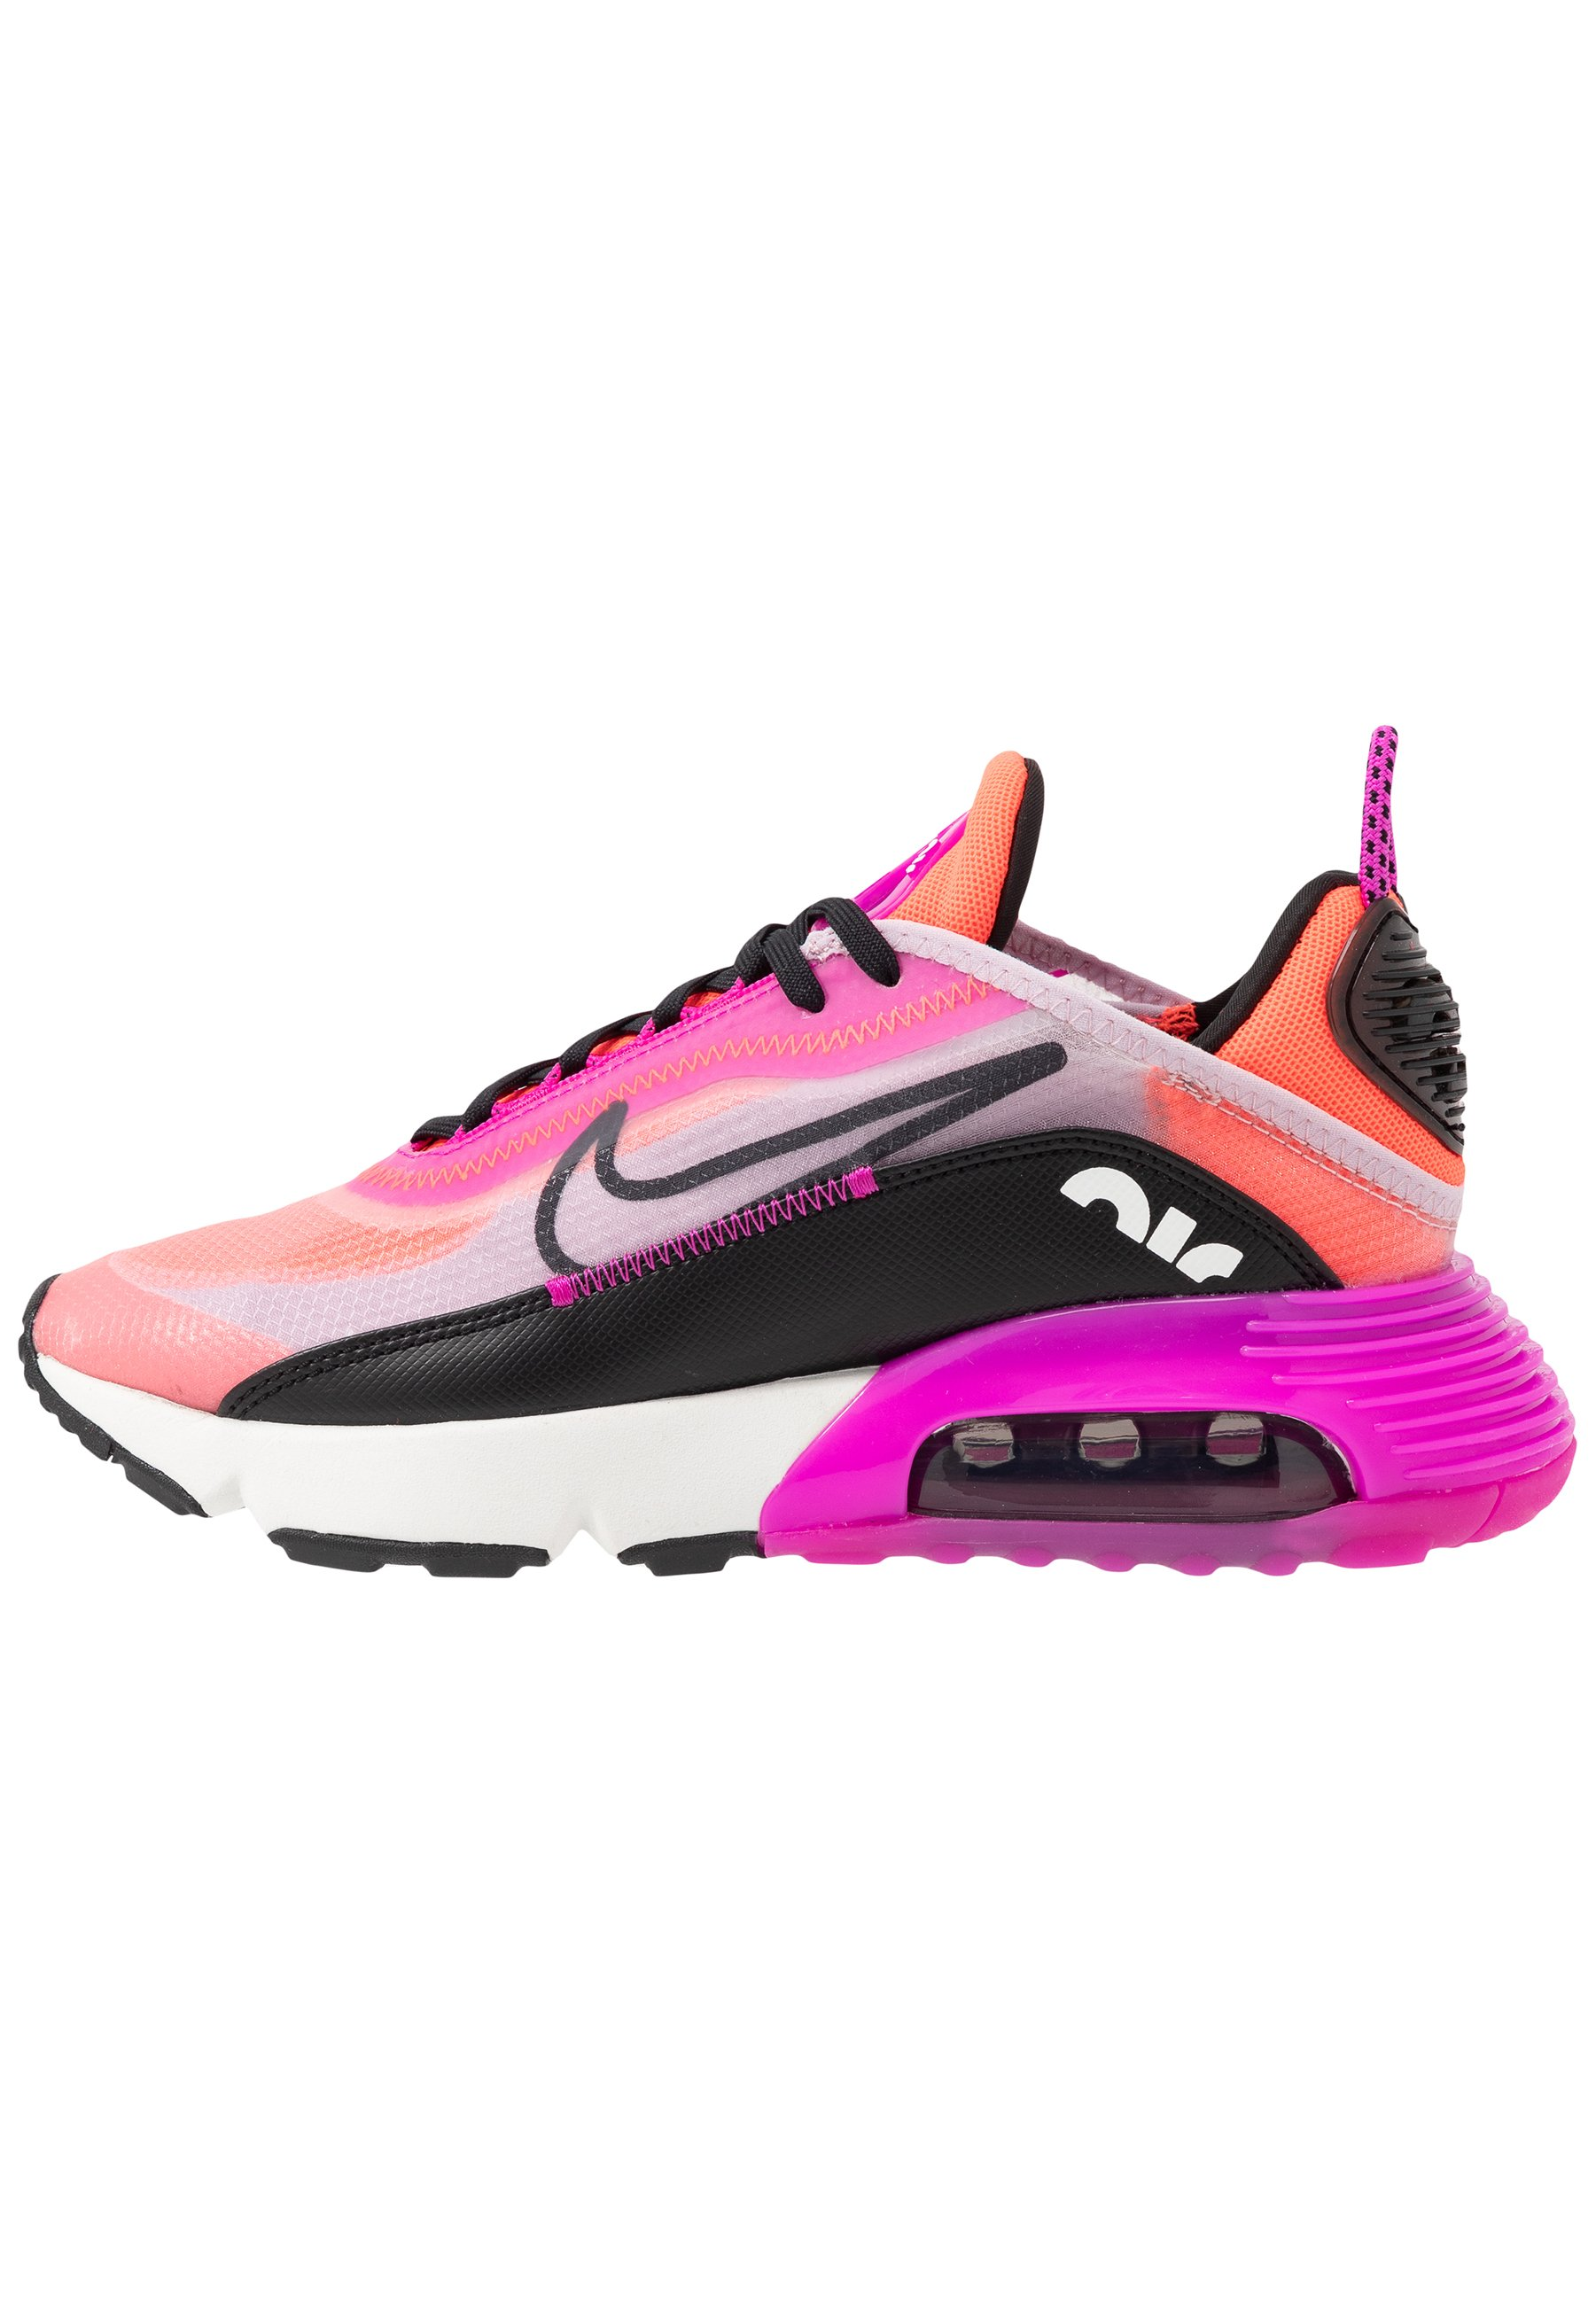 AIR MAX 2090 Sneakers laag iced lilacblackfire pinkflash crimsonsummit whiteanthracite